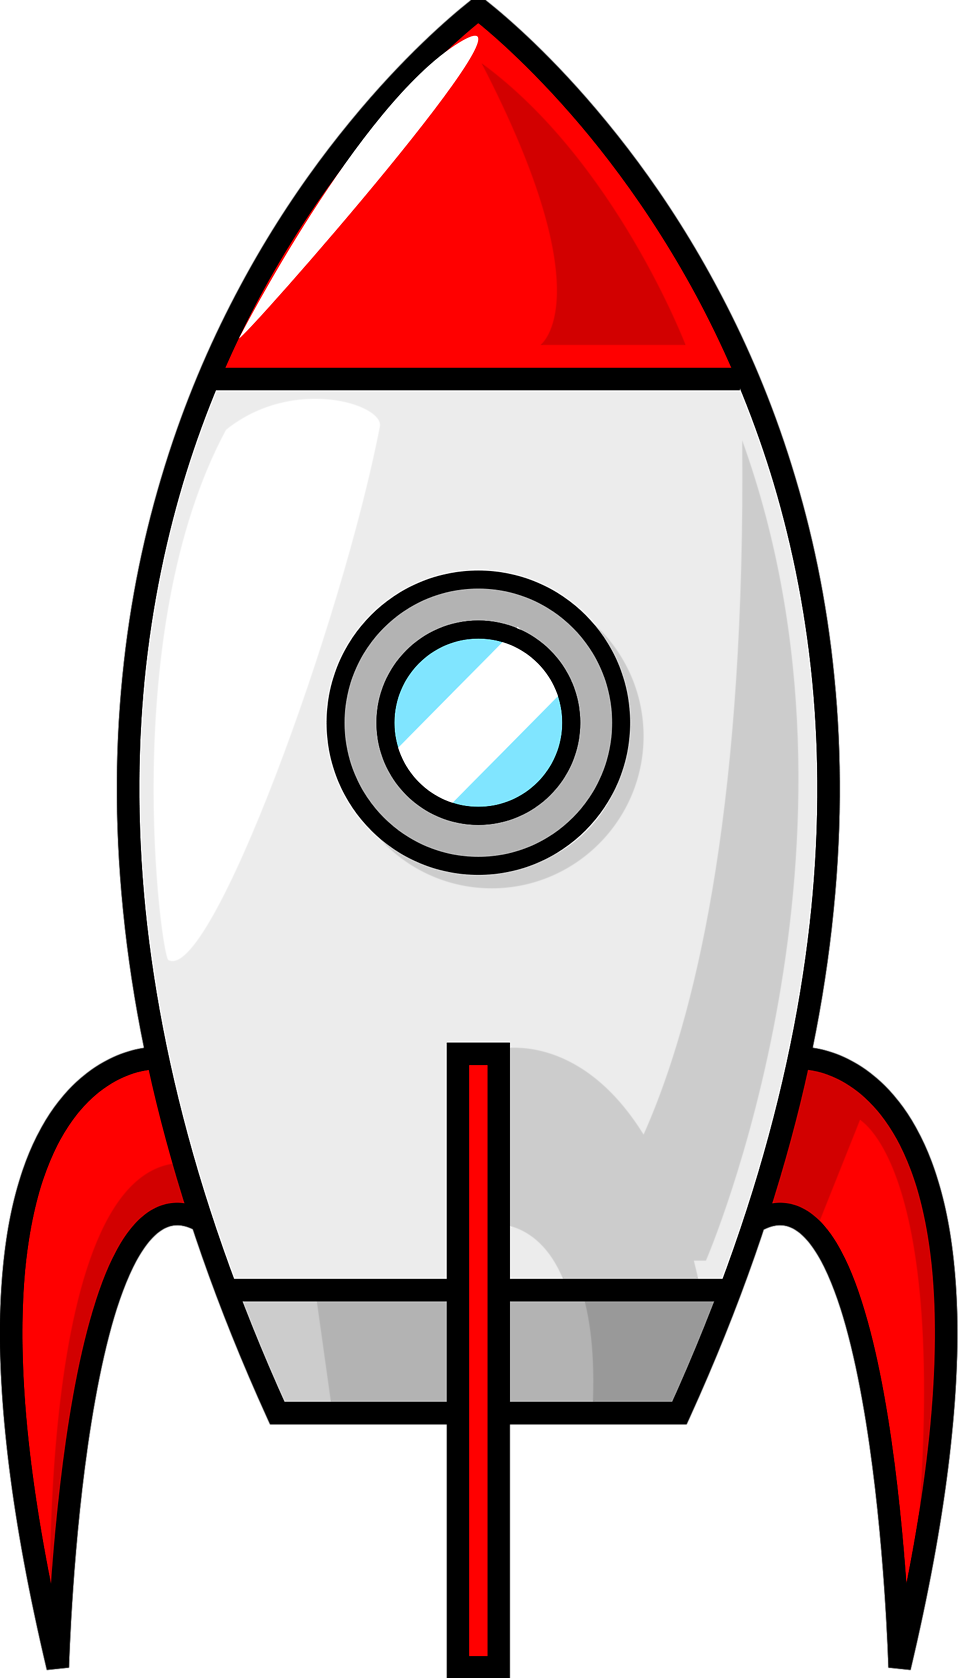 Rocket clipart red rocket 16617 : a of Photo